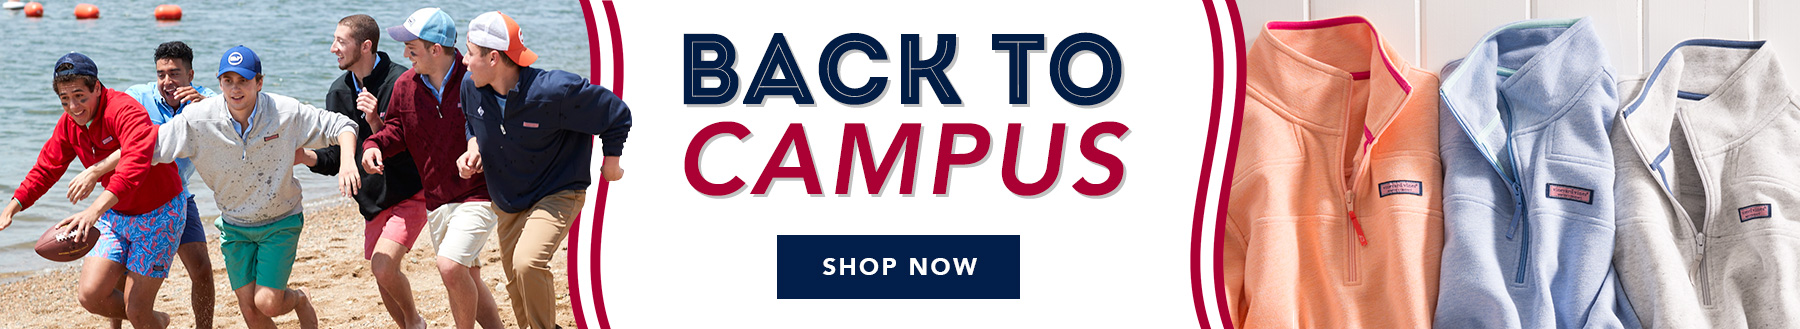 Back To Campus. Shop Now.